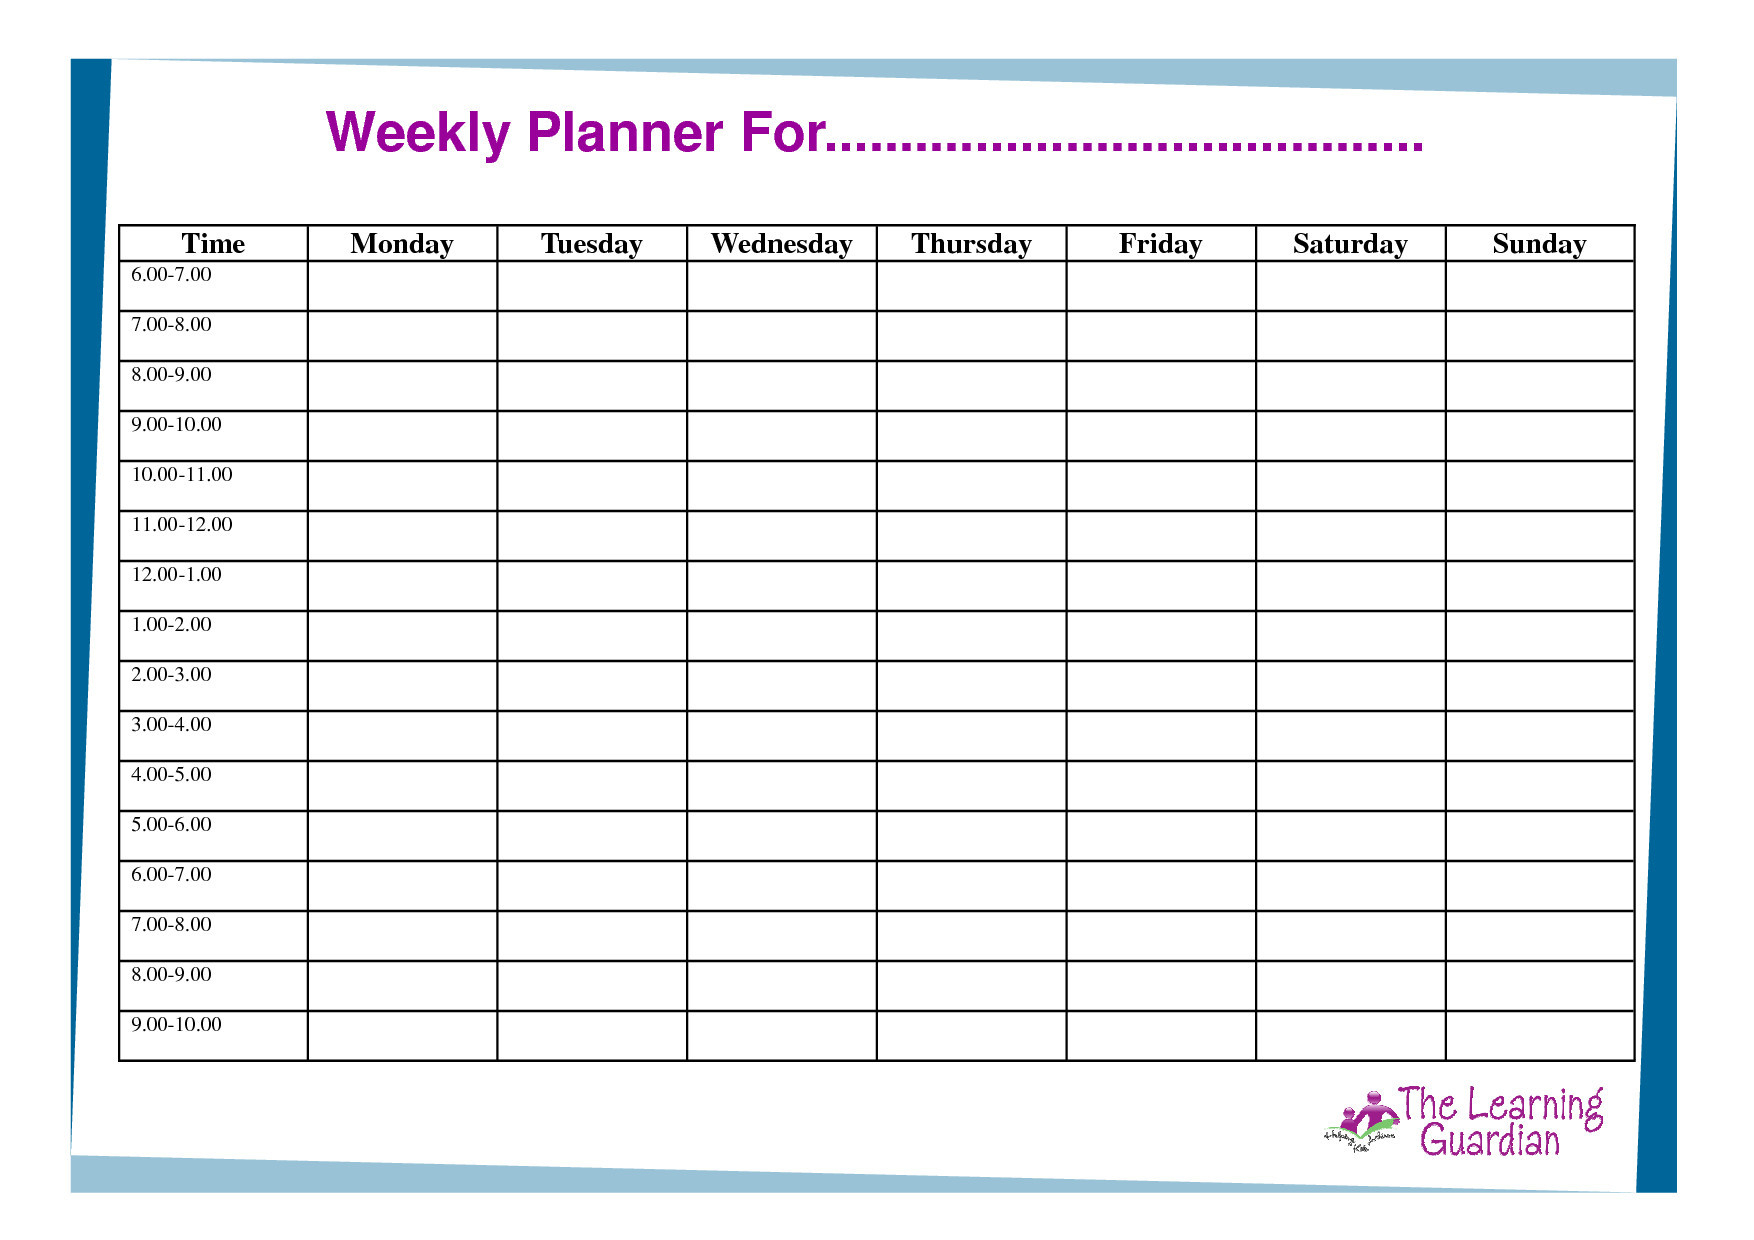 Hourly Spreadsheet Regarding Daily Hourly Planner Template